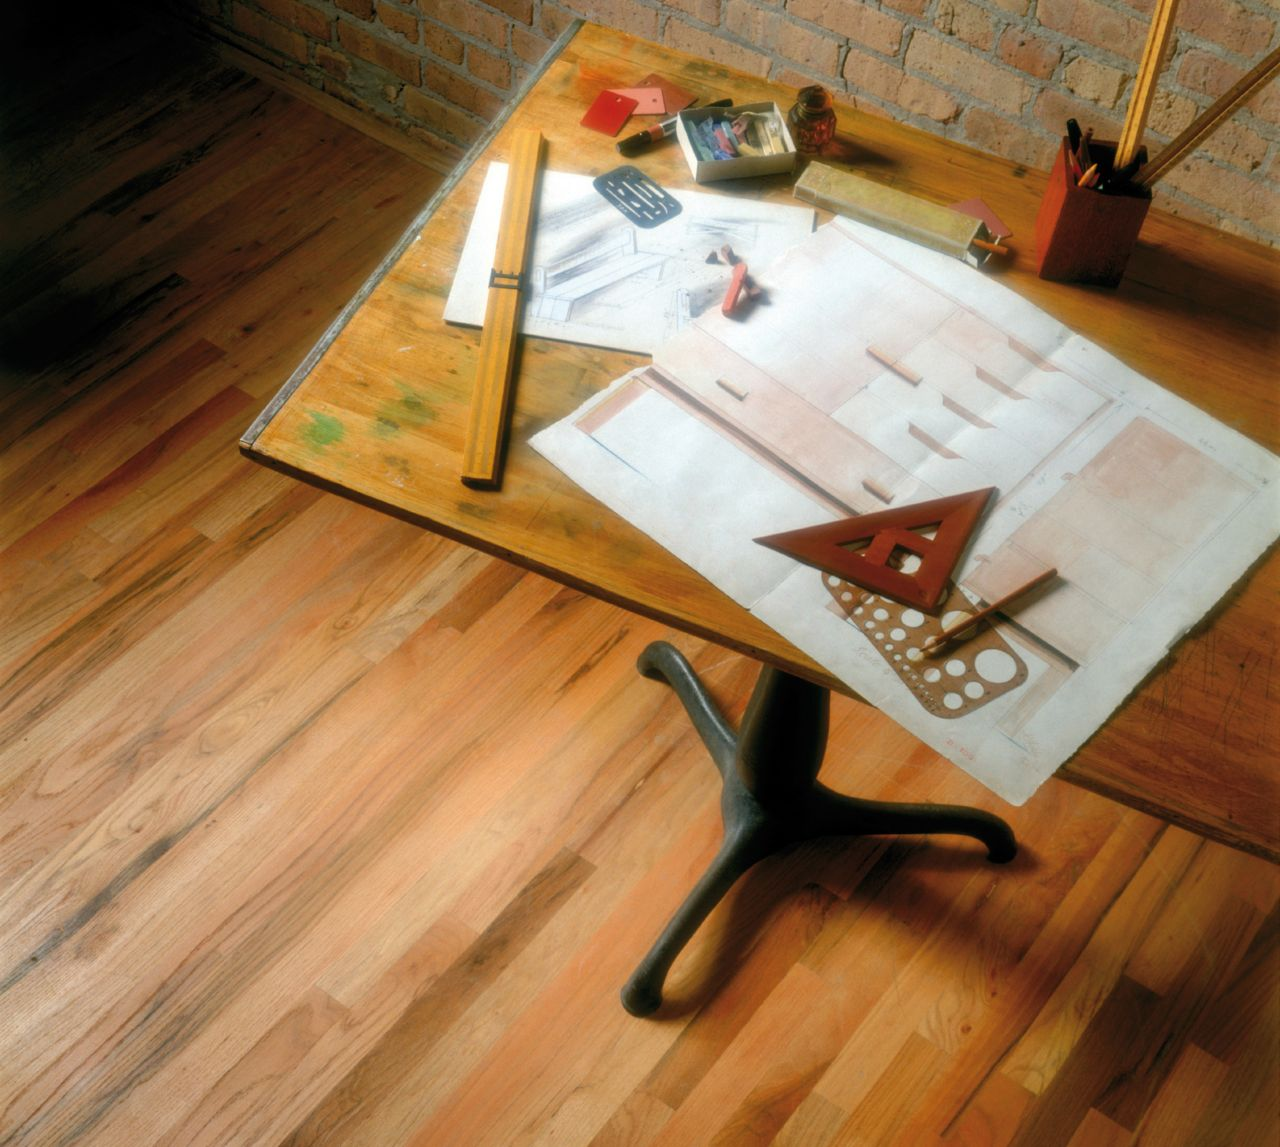 Architect's office and blueprint on desk with wood floor